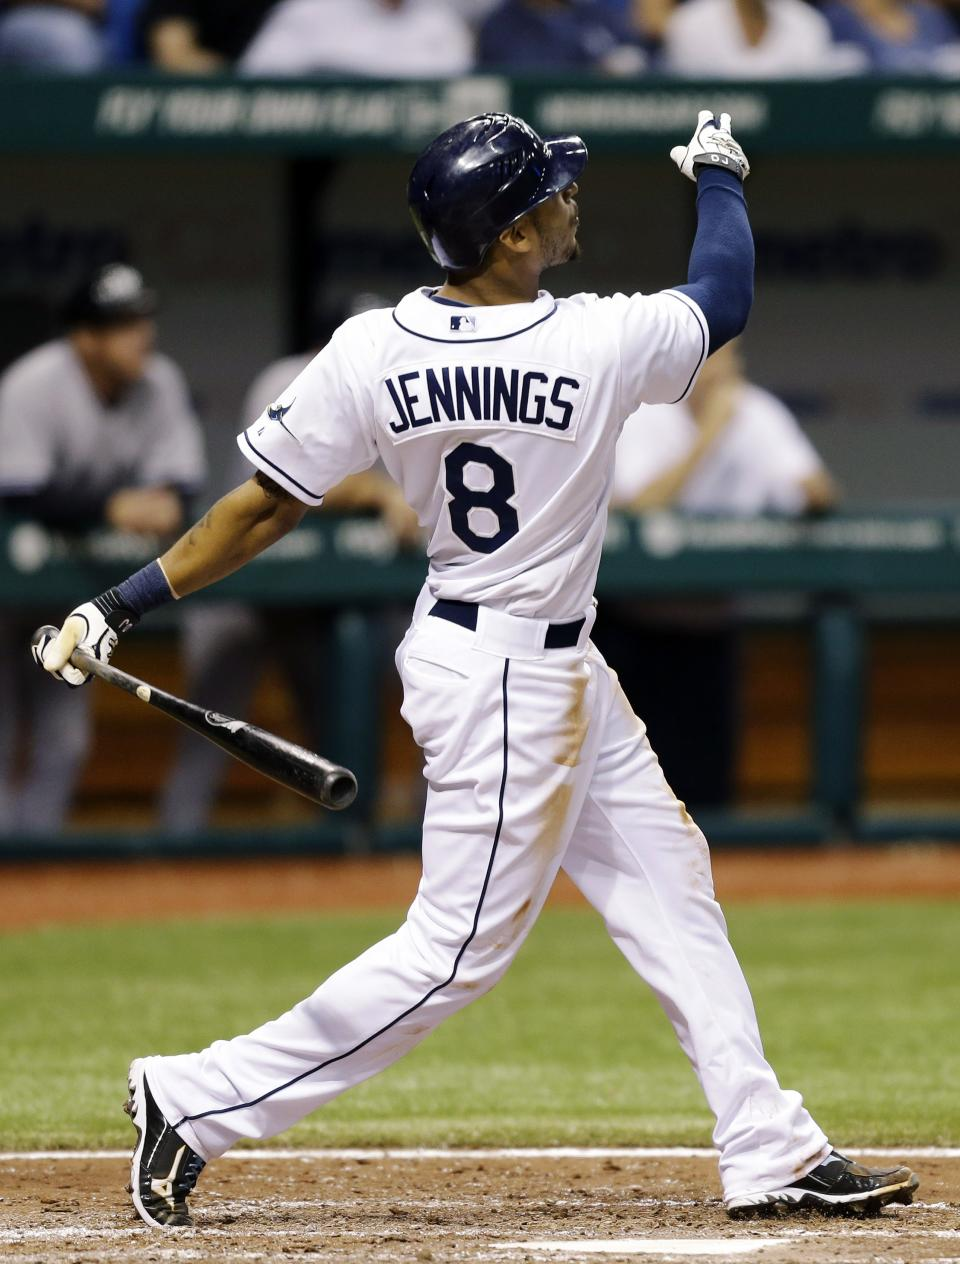 Tampa Bay Rays' Desmond Jennings follows the flight of his fifth-inning home run off New York Yankees starting pitcher Freddy Garcia during a baseball game, Tuesday, Sept. 4, 2012, in St. Petersburg, Fla. (AP Photo/Chris O'Meara)